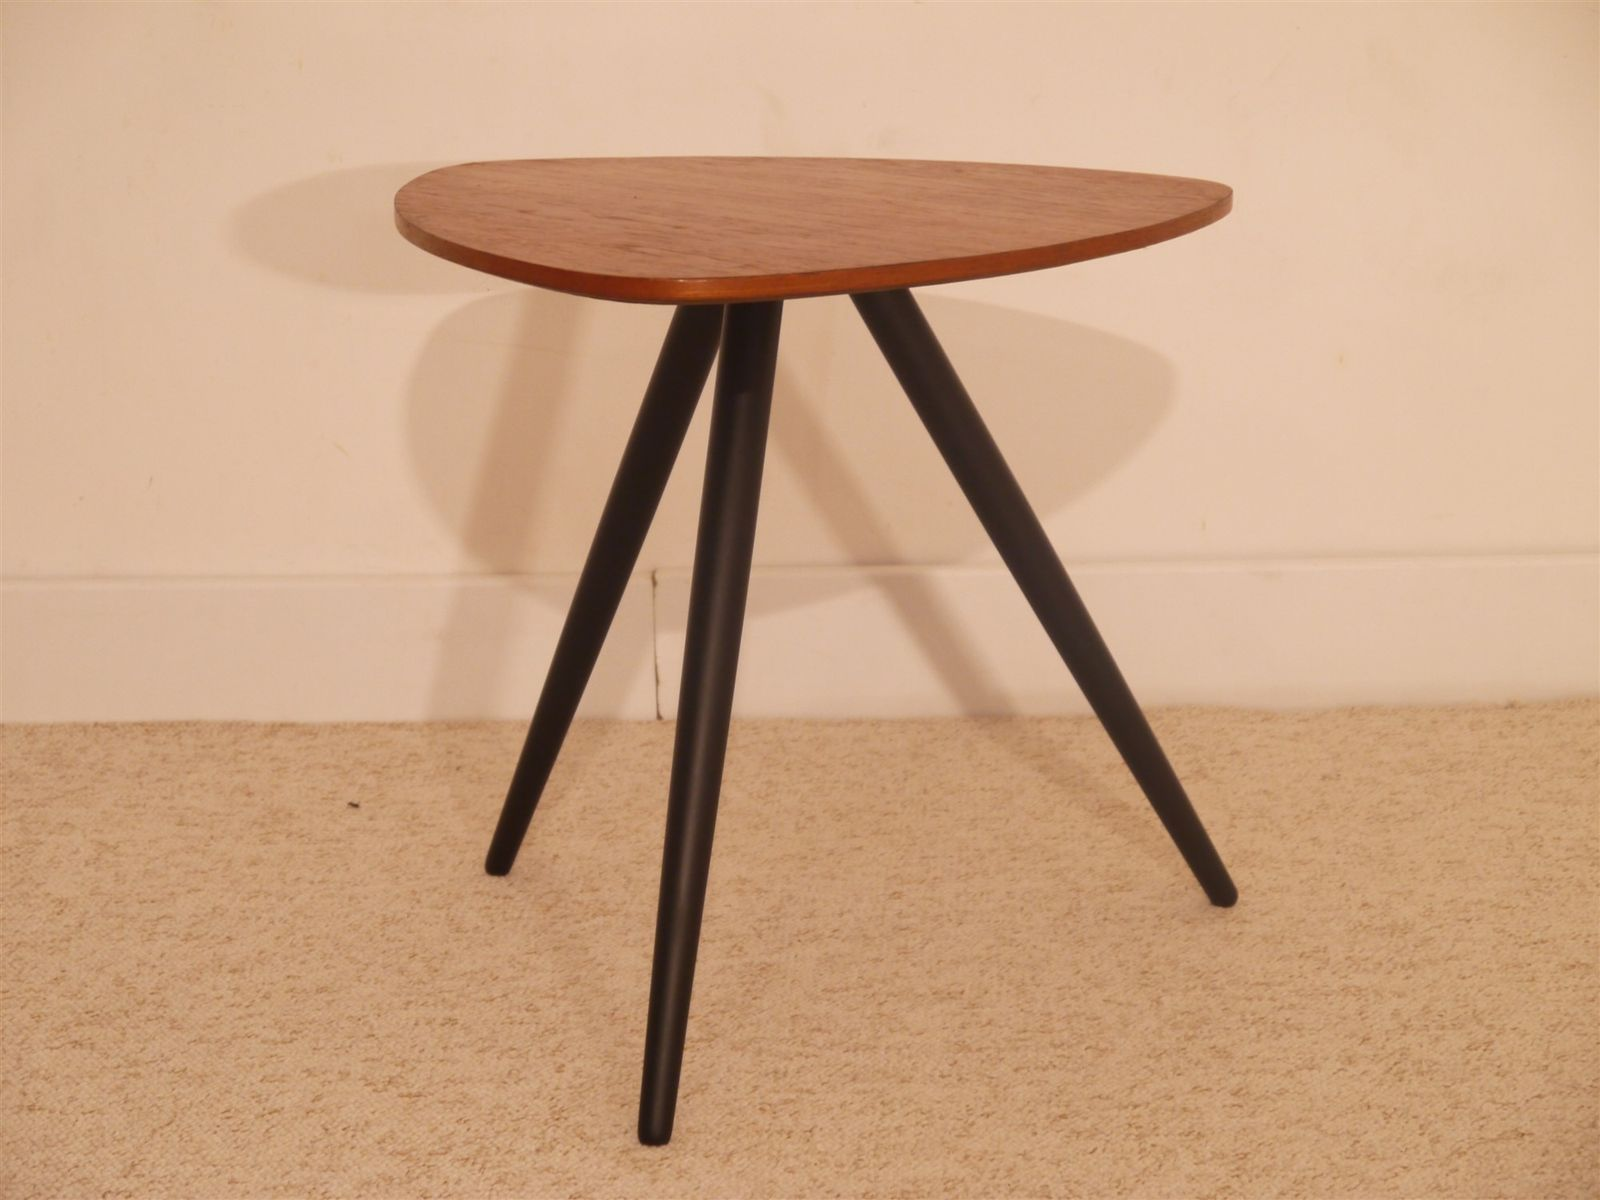 vintage scandinavian tripod side table in teak for sale at